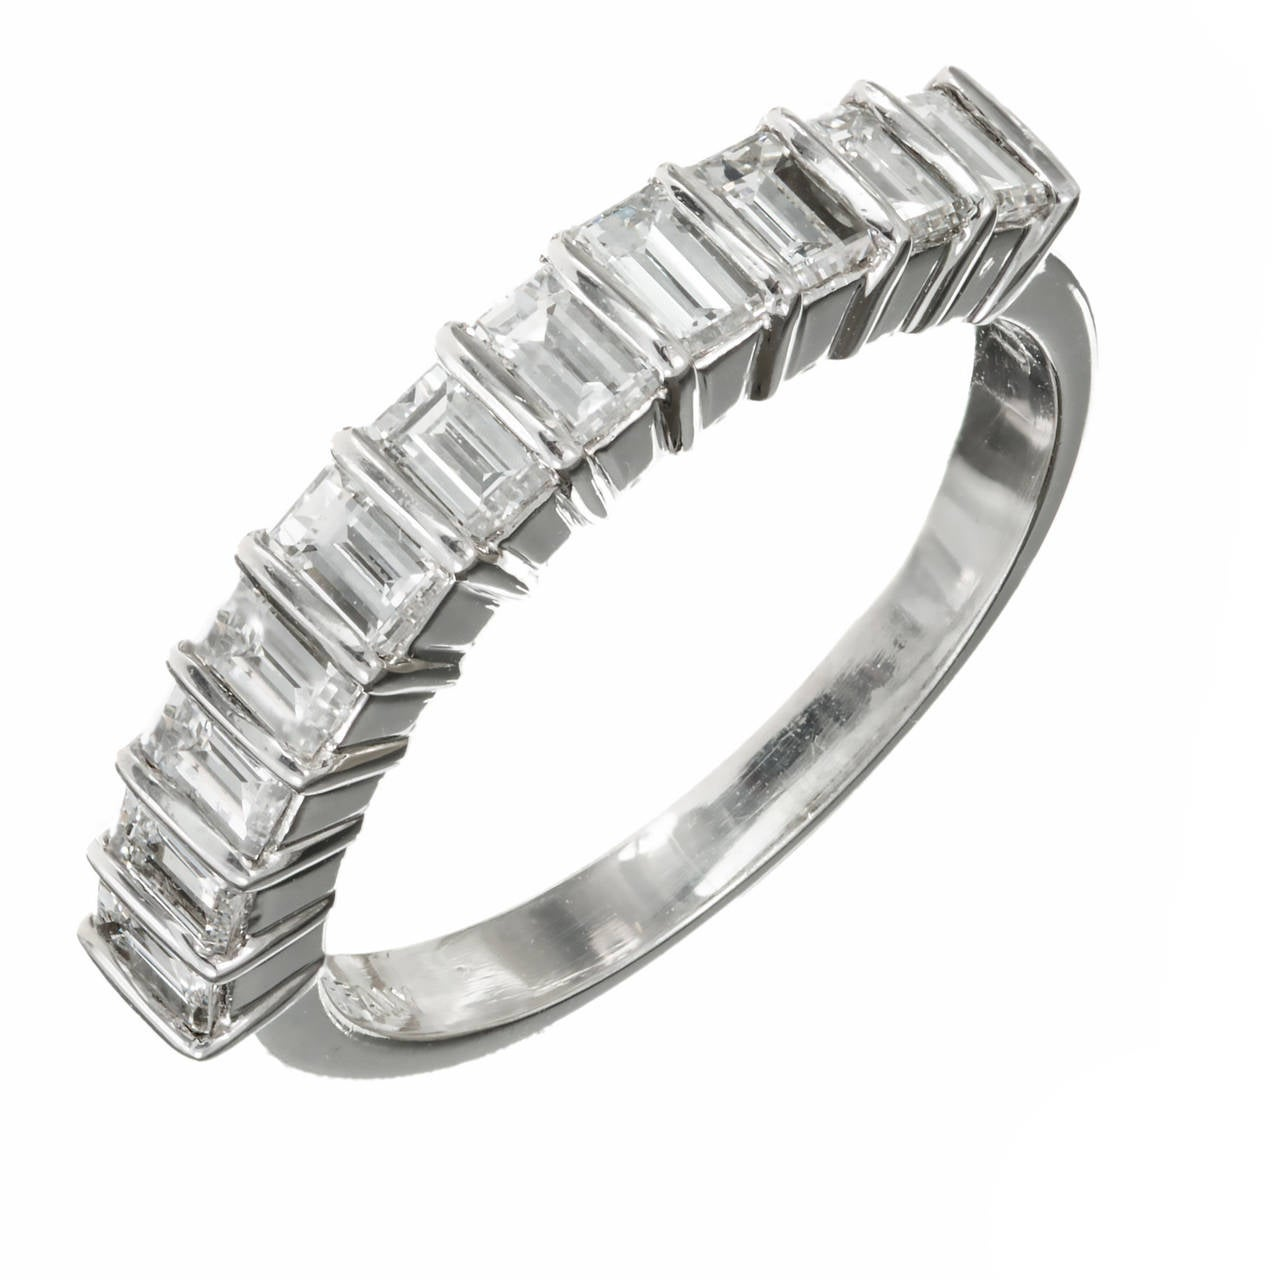 Tiffany and Co Emerald Cut Diamond Platinum Wedding Band Ring at